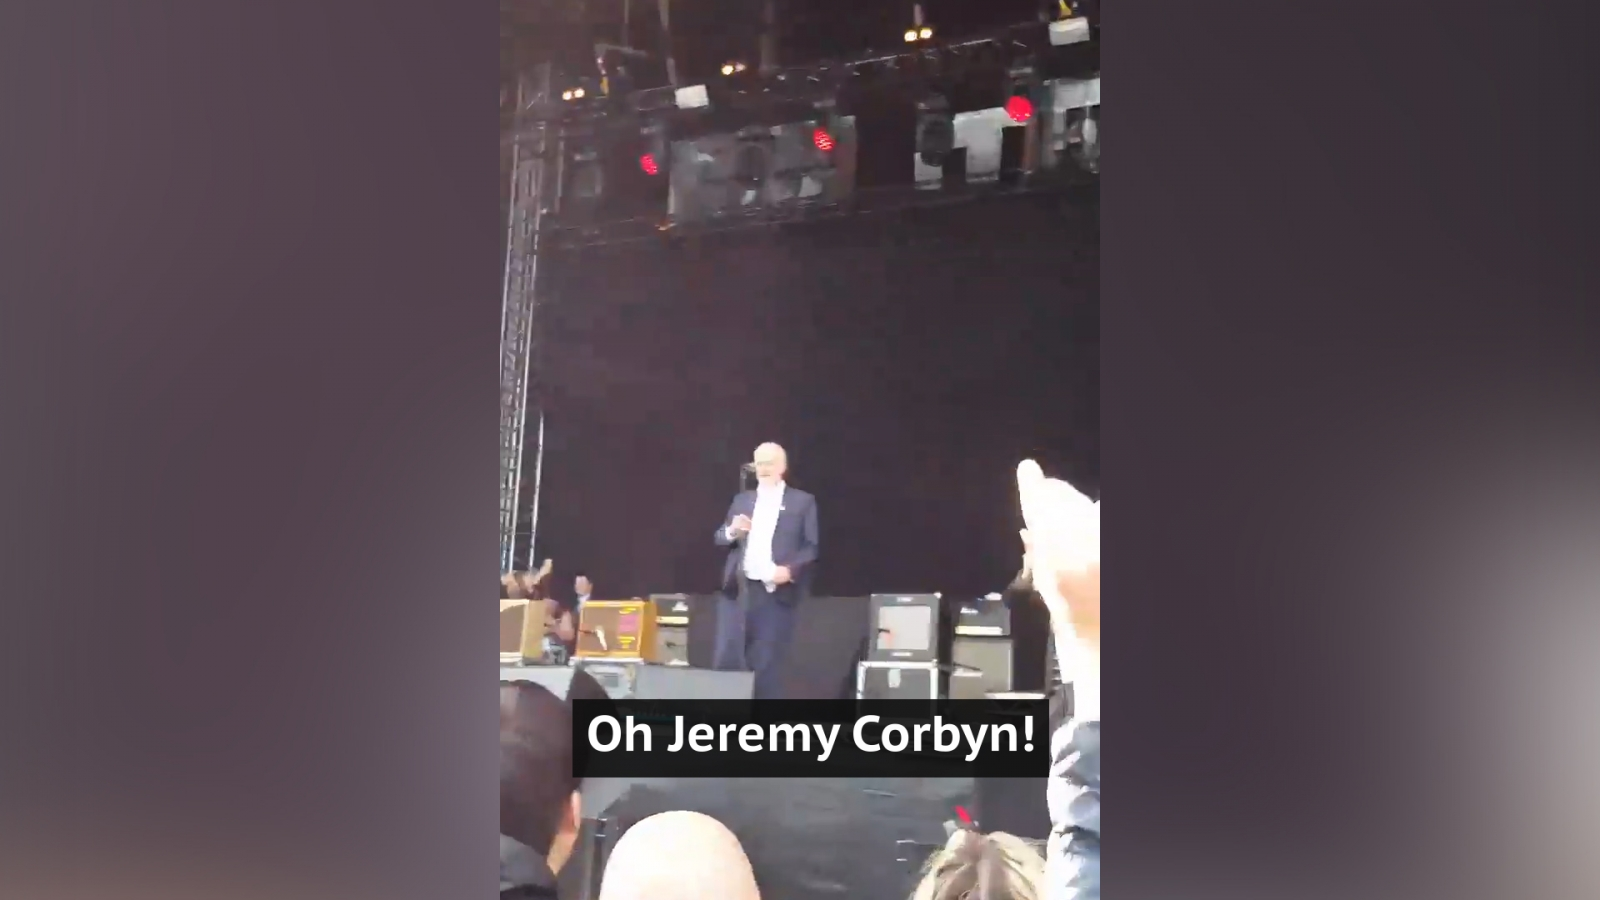 Jeremy Corbyn's surprise concert appearance whips up crowd at Libertines gig